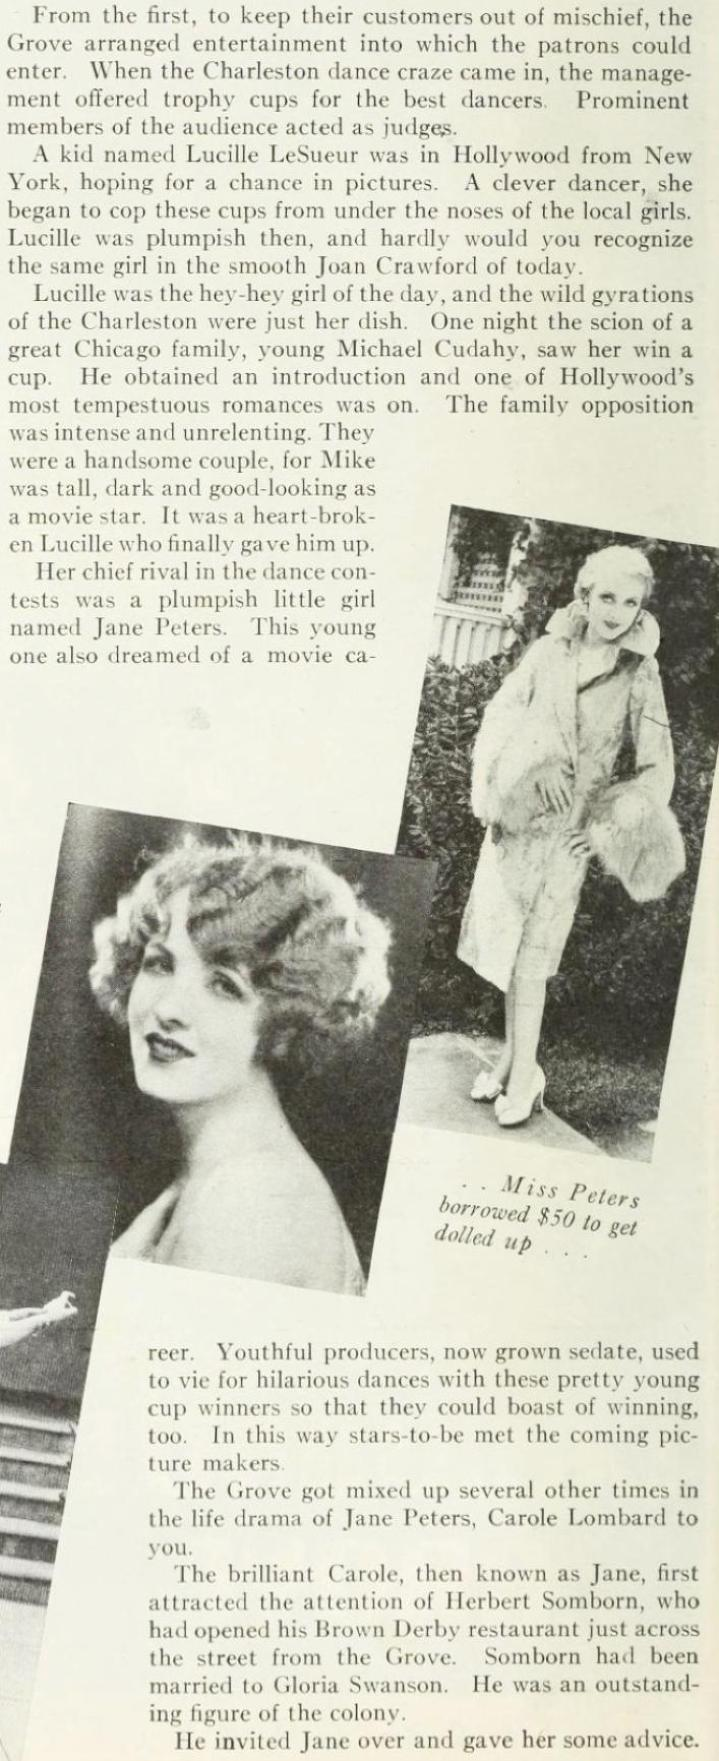 carole lombard photoplay april 1937db